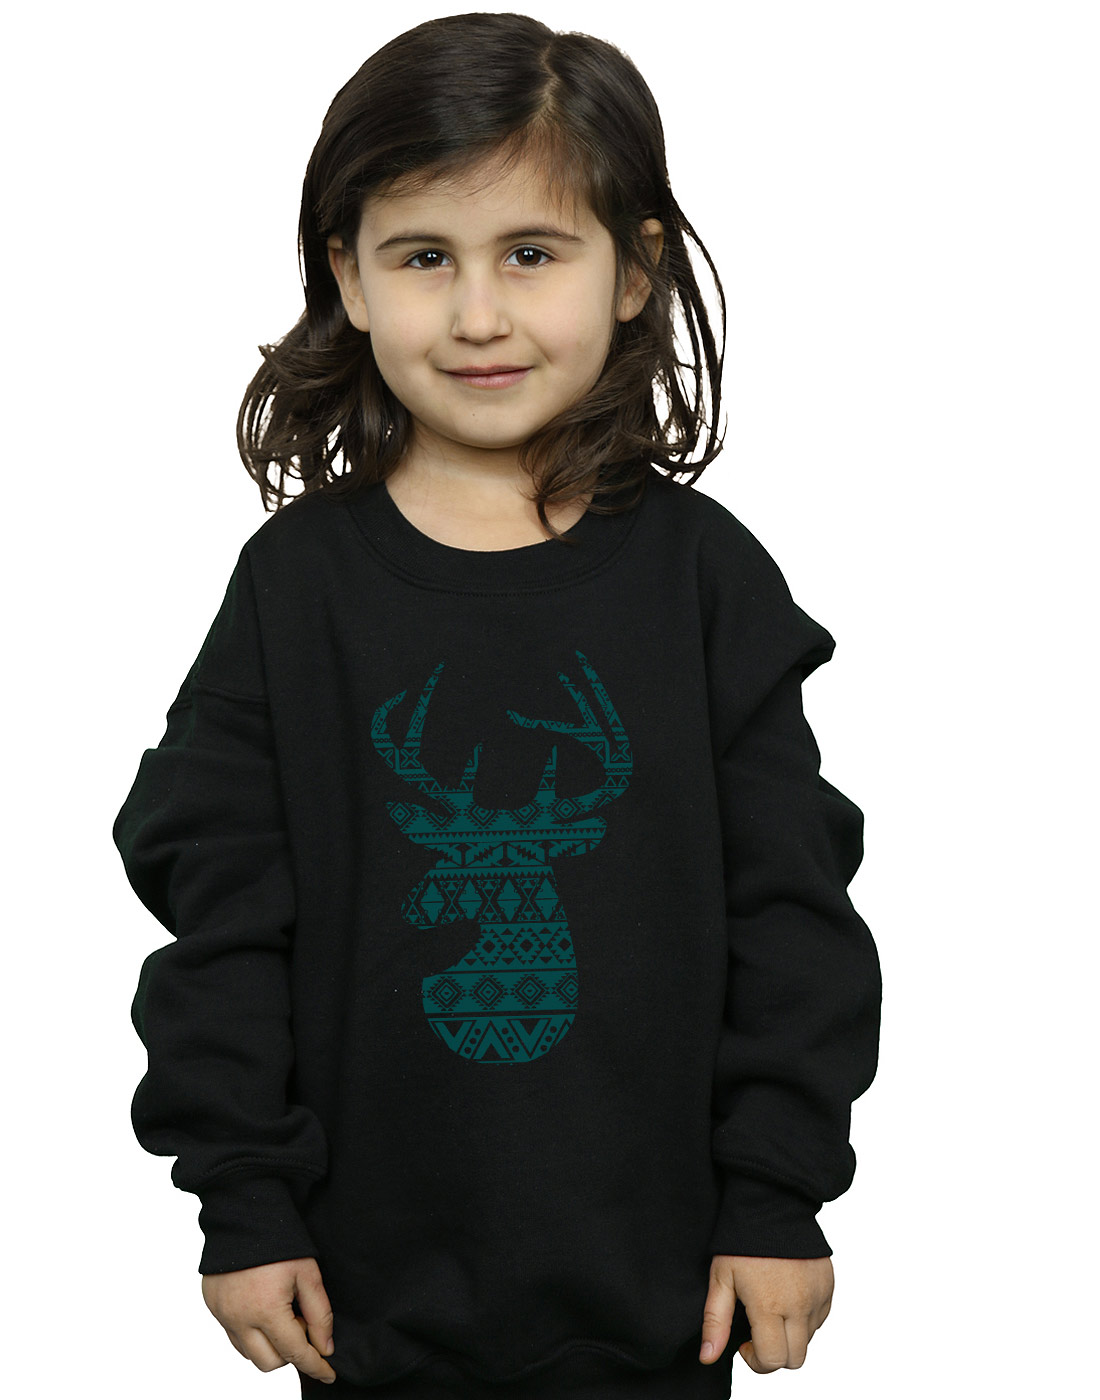 Absolute Cult Drewbacca Girls Deer Gentleman Sweatshirt